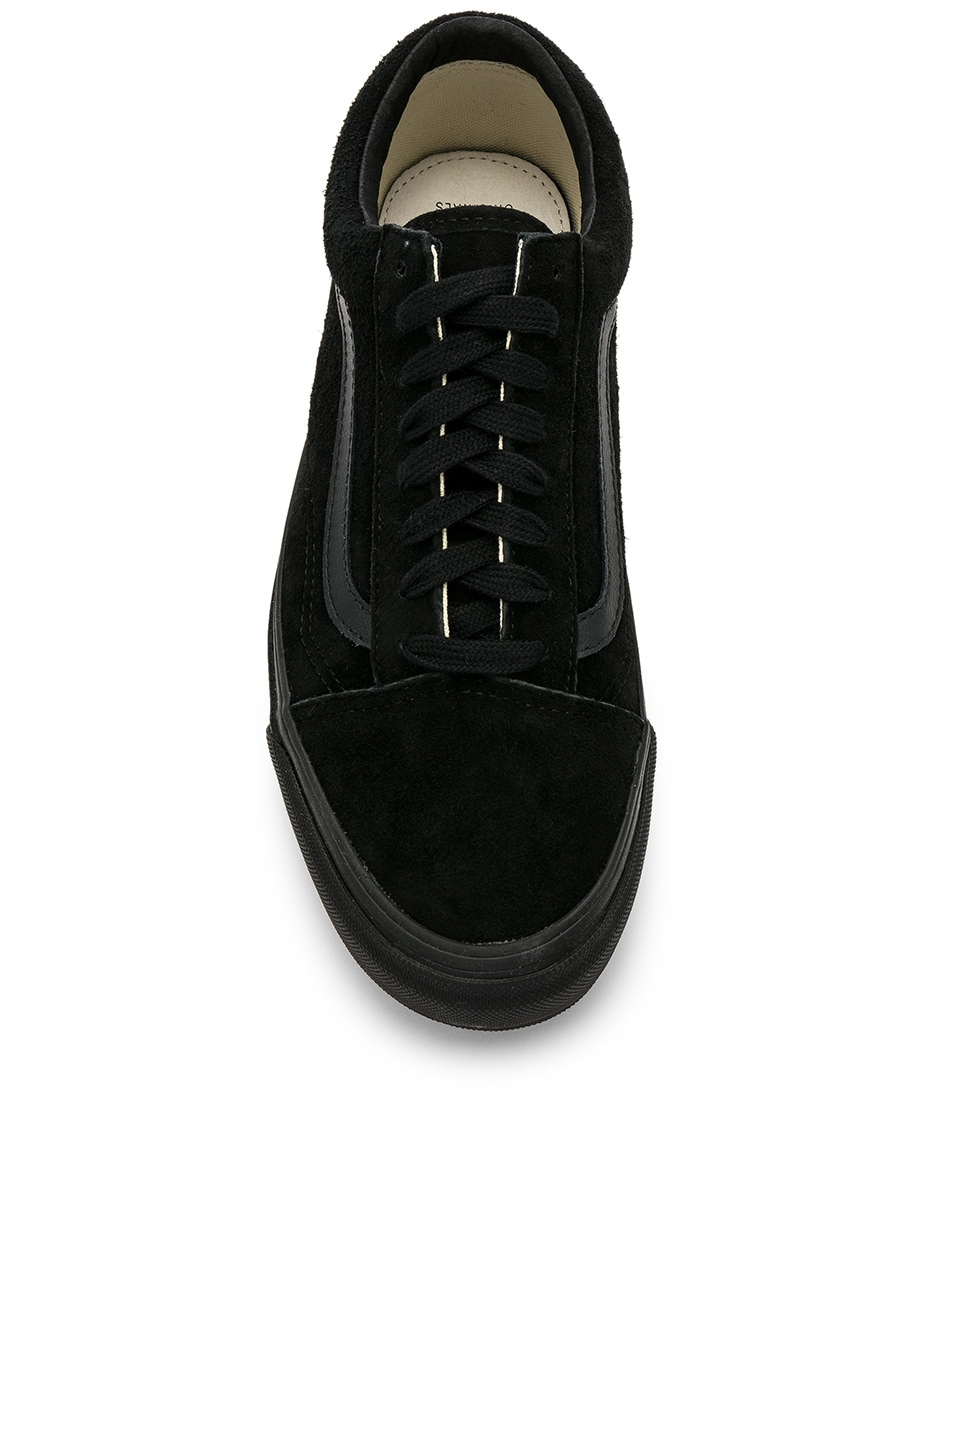 Image 4 of Vans Vault OG Old Skool LX in Black